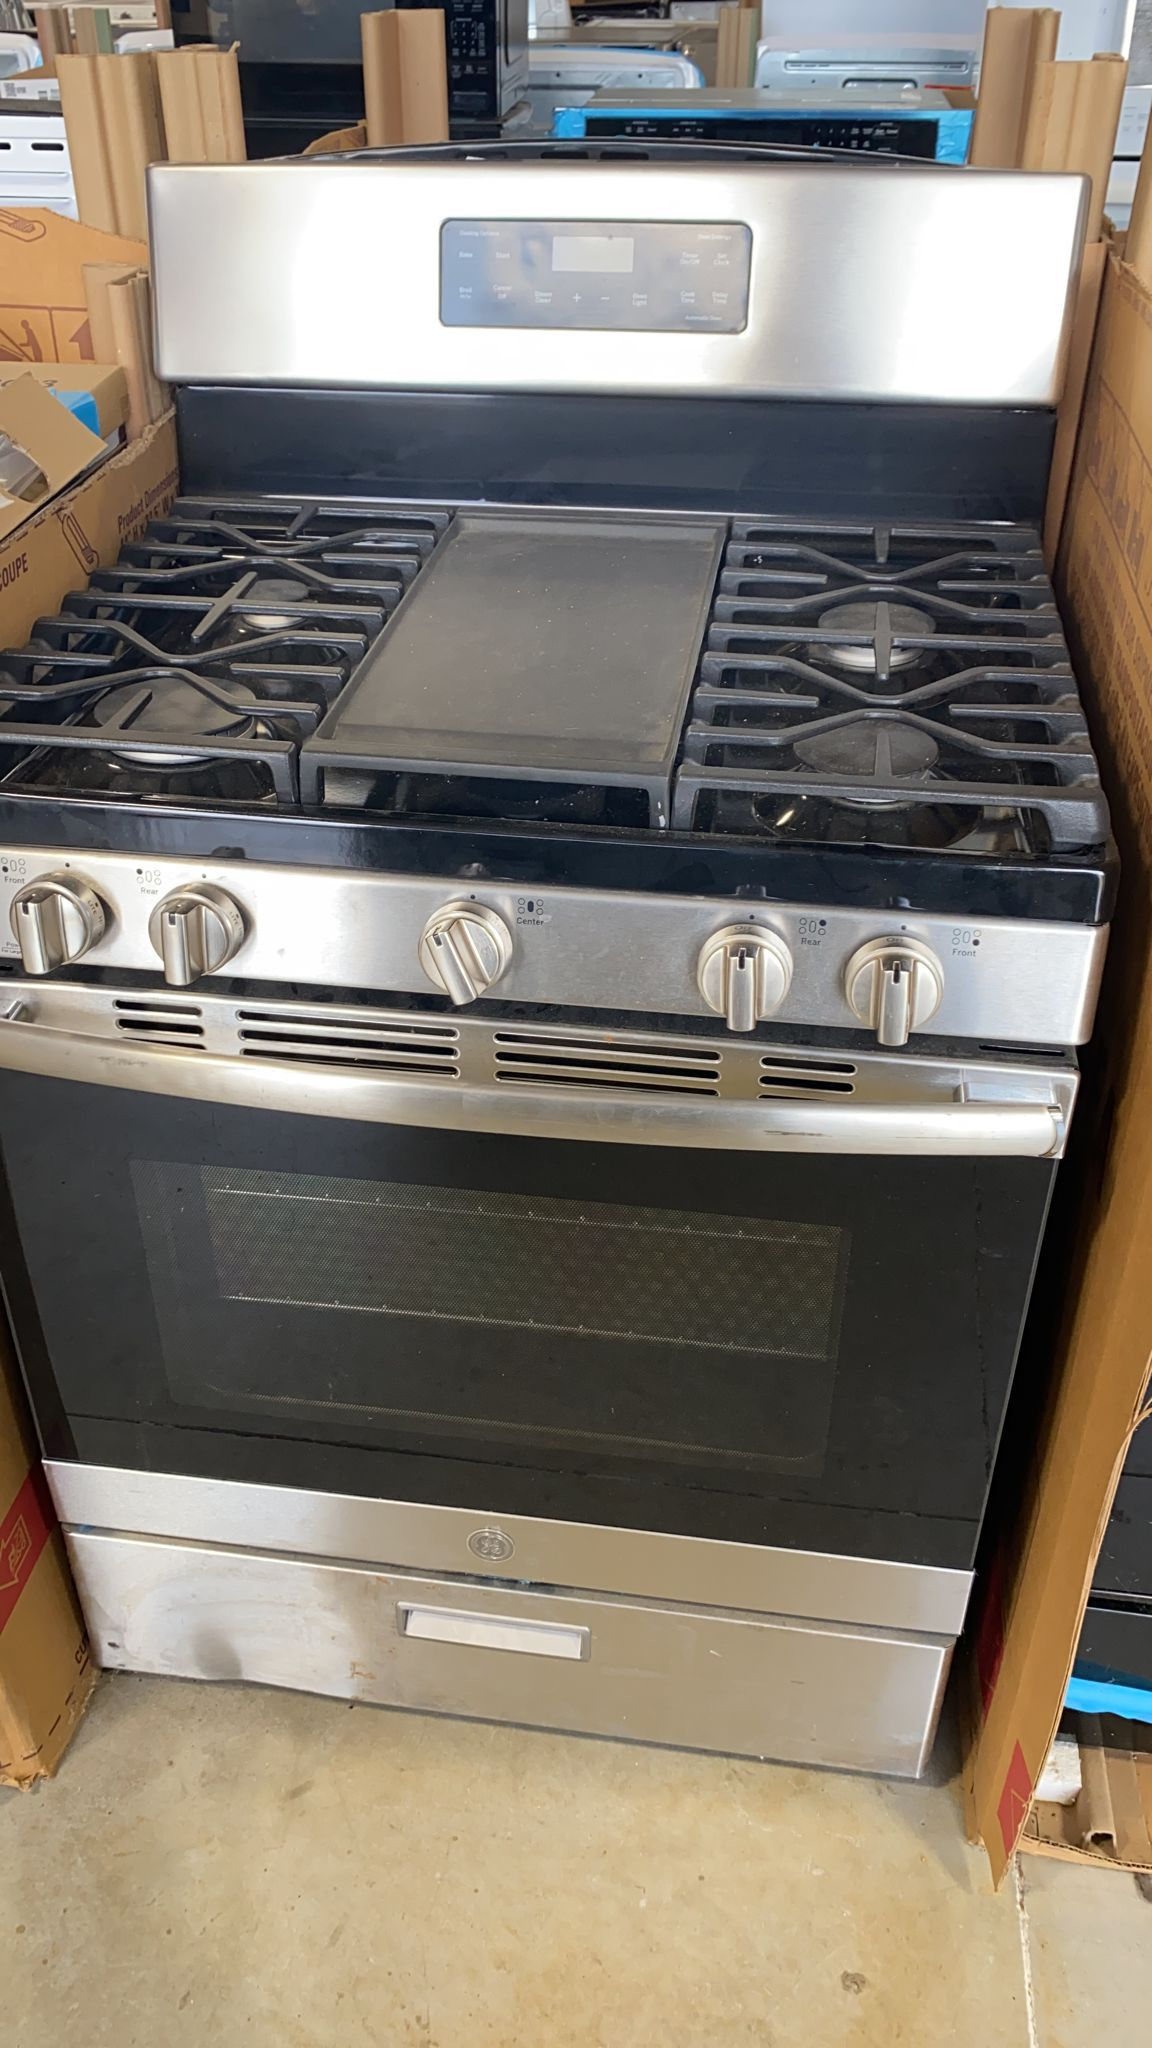 New Stove Only $39 Down Payment